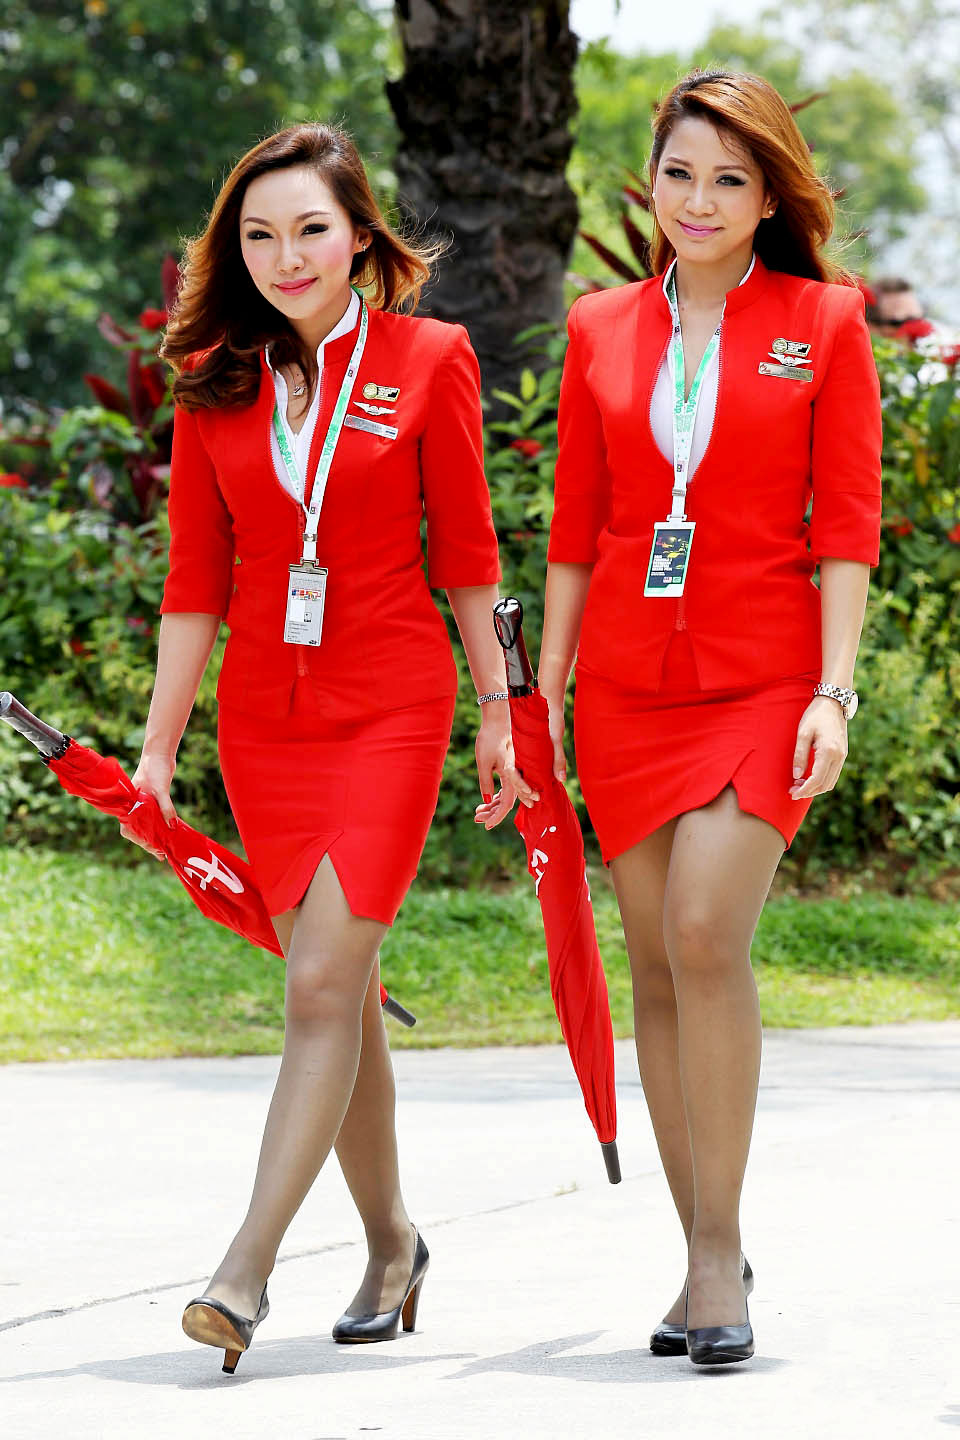 Two Malaysian ruling-party lawmakers have chided homegrown airlines AirAsia and Firefly for dressing their stewardesses in uniforms that are 'too revealing'.<br>